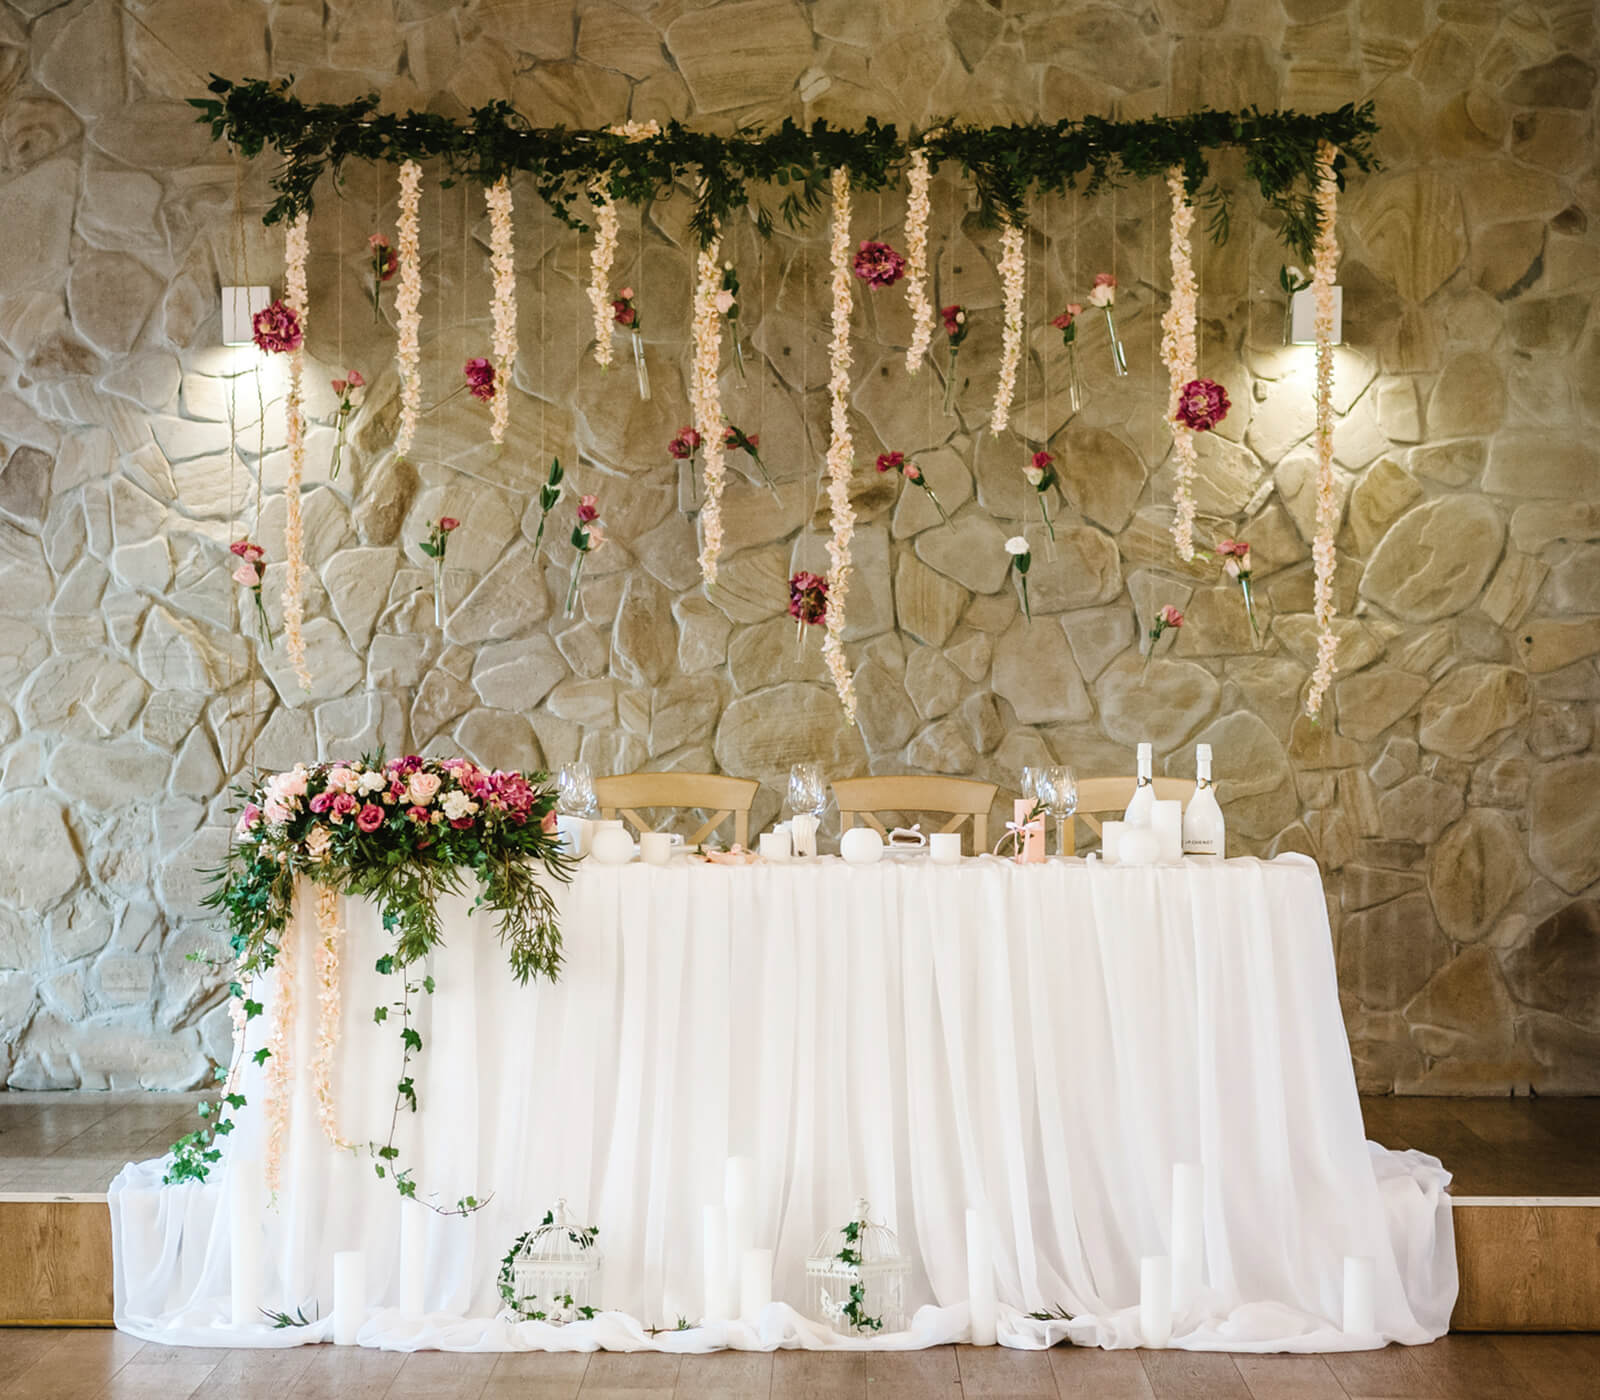 1-1-pictures-head-table-decorations.jpg